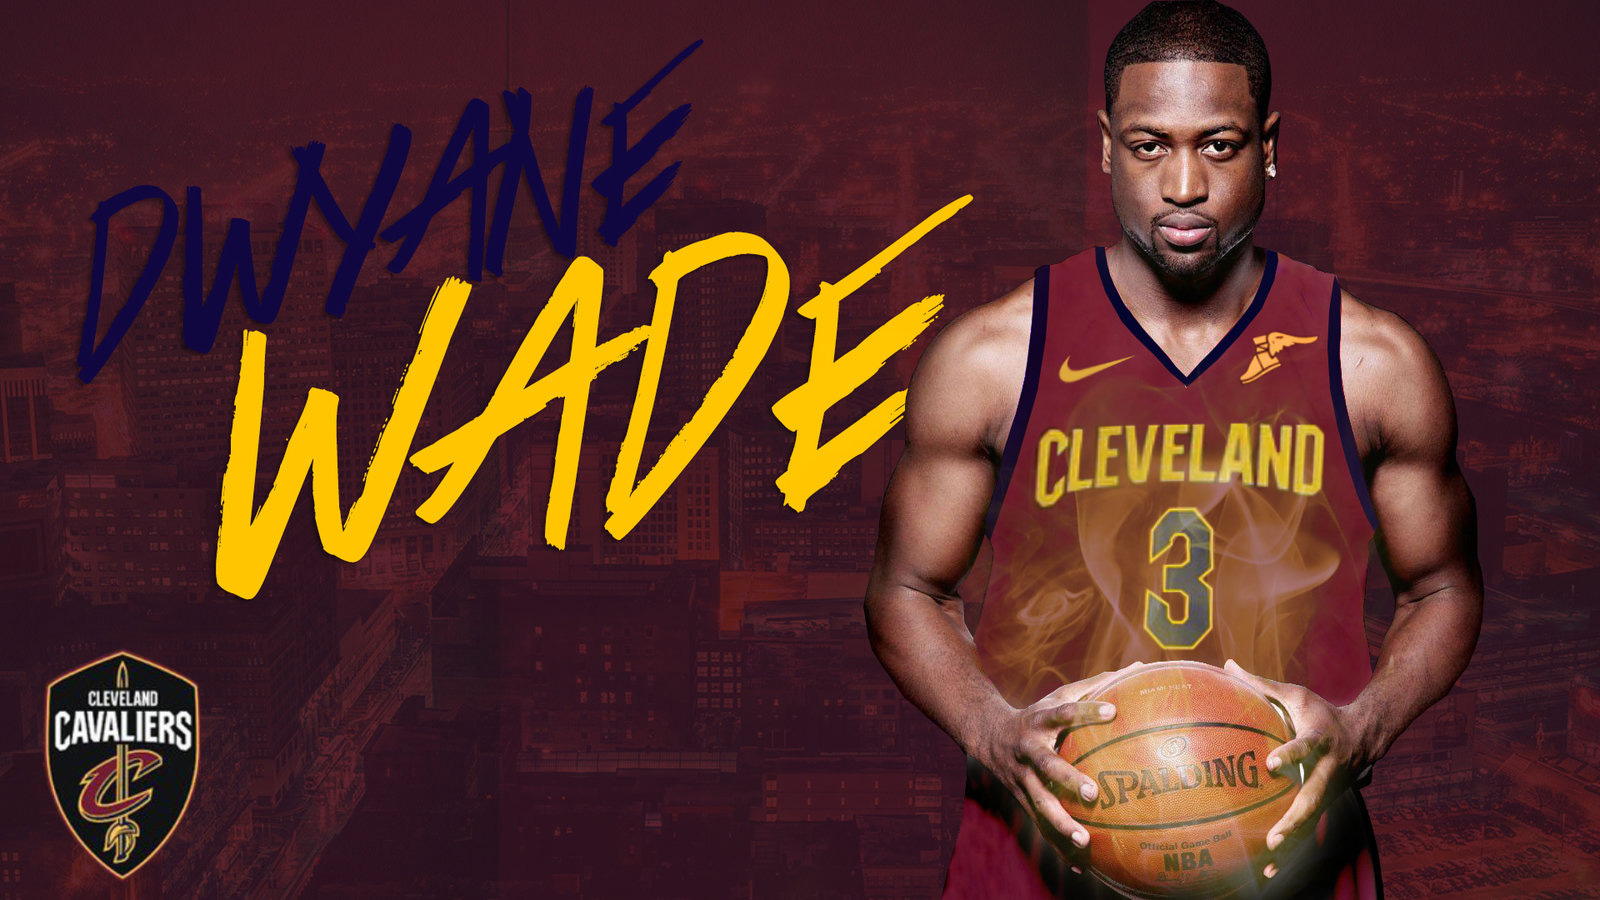 NBA Wallpapers. Dwyane Wade Cavaliers 2017 1600x900 Wallpaper